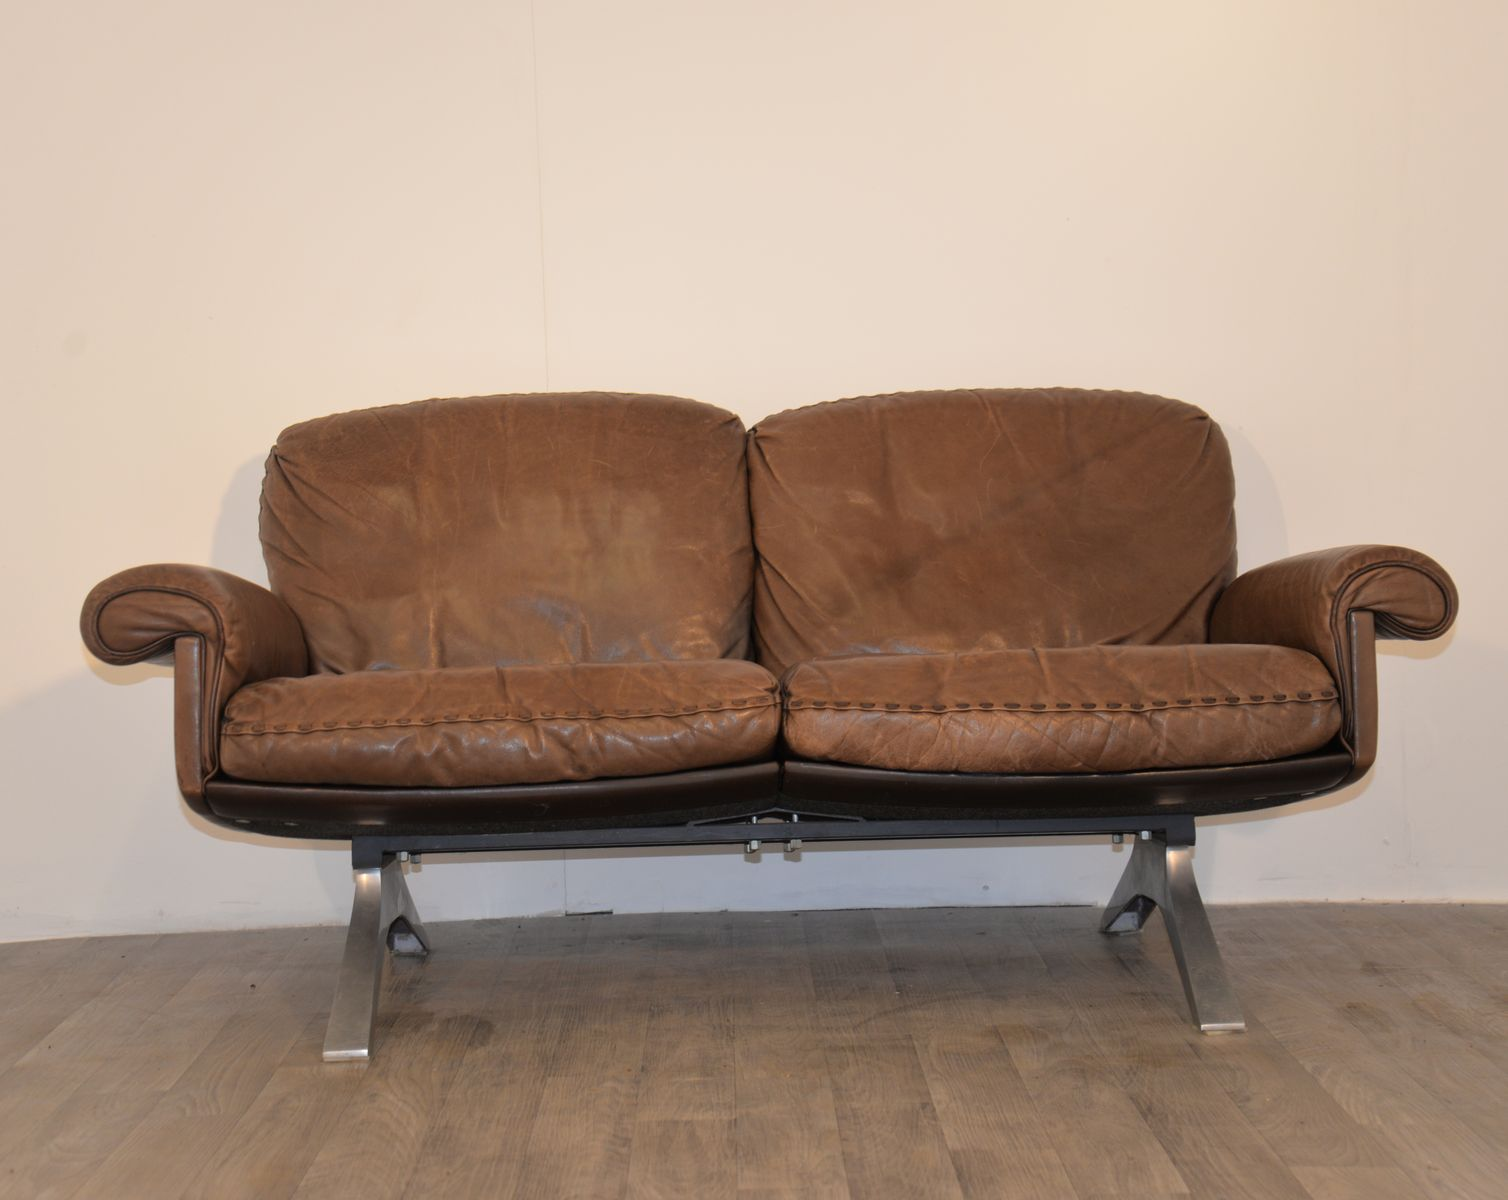 ds 31 vintage 2 seater sofa by de sede for de sede for sale at pamono. Black Bedroom Furniture Sets. Home Design Ideas